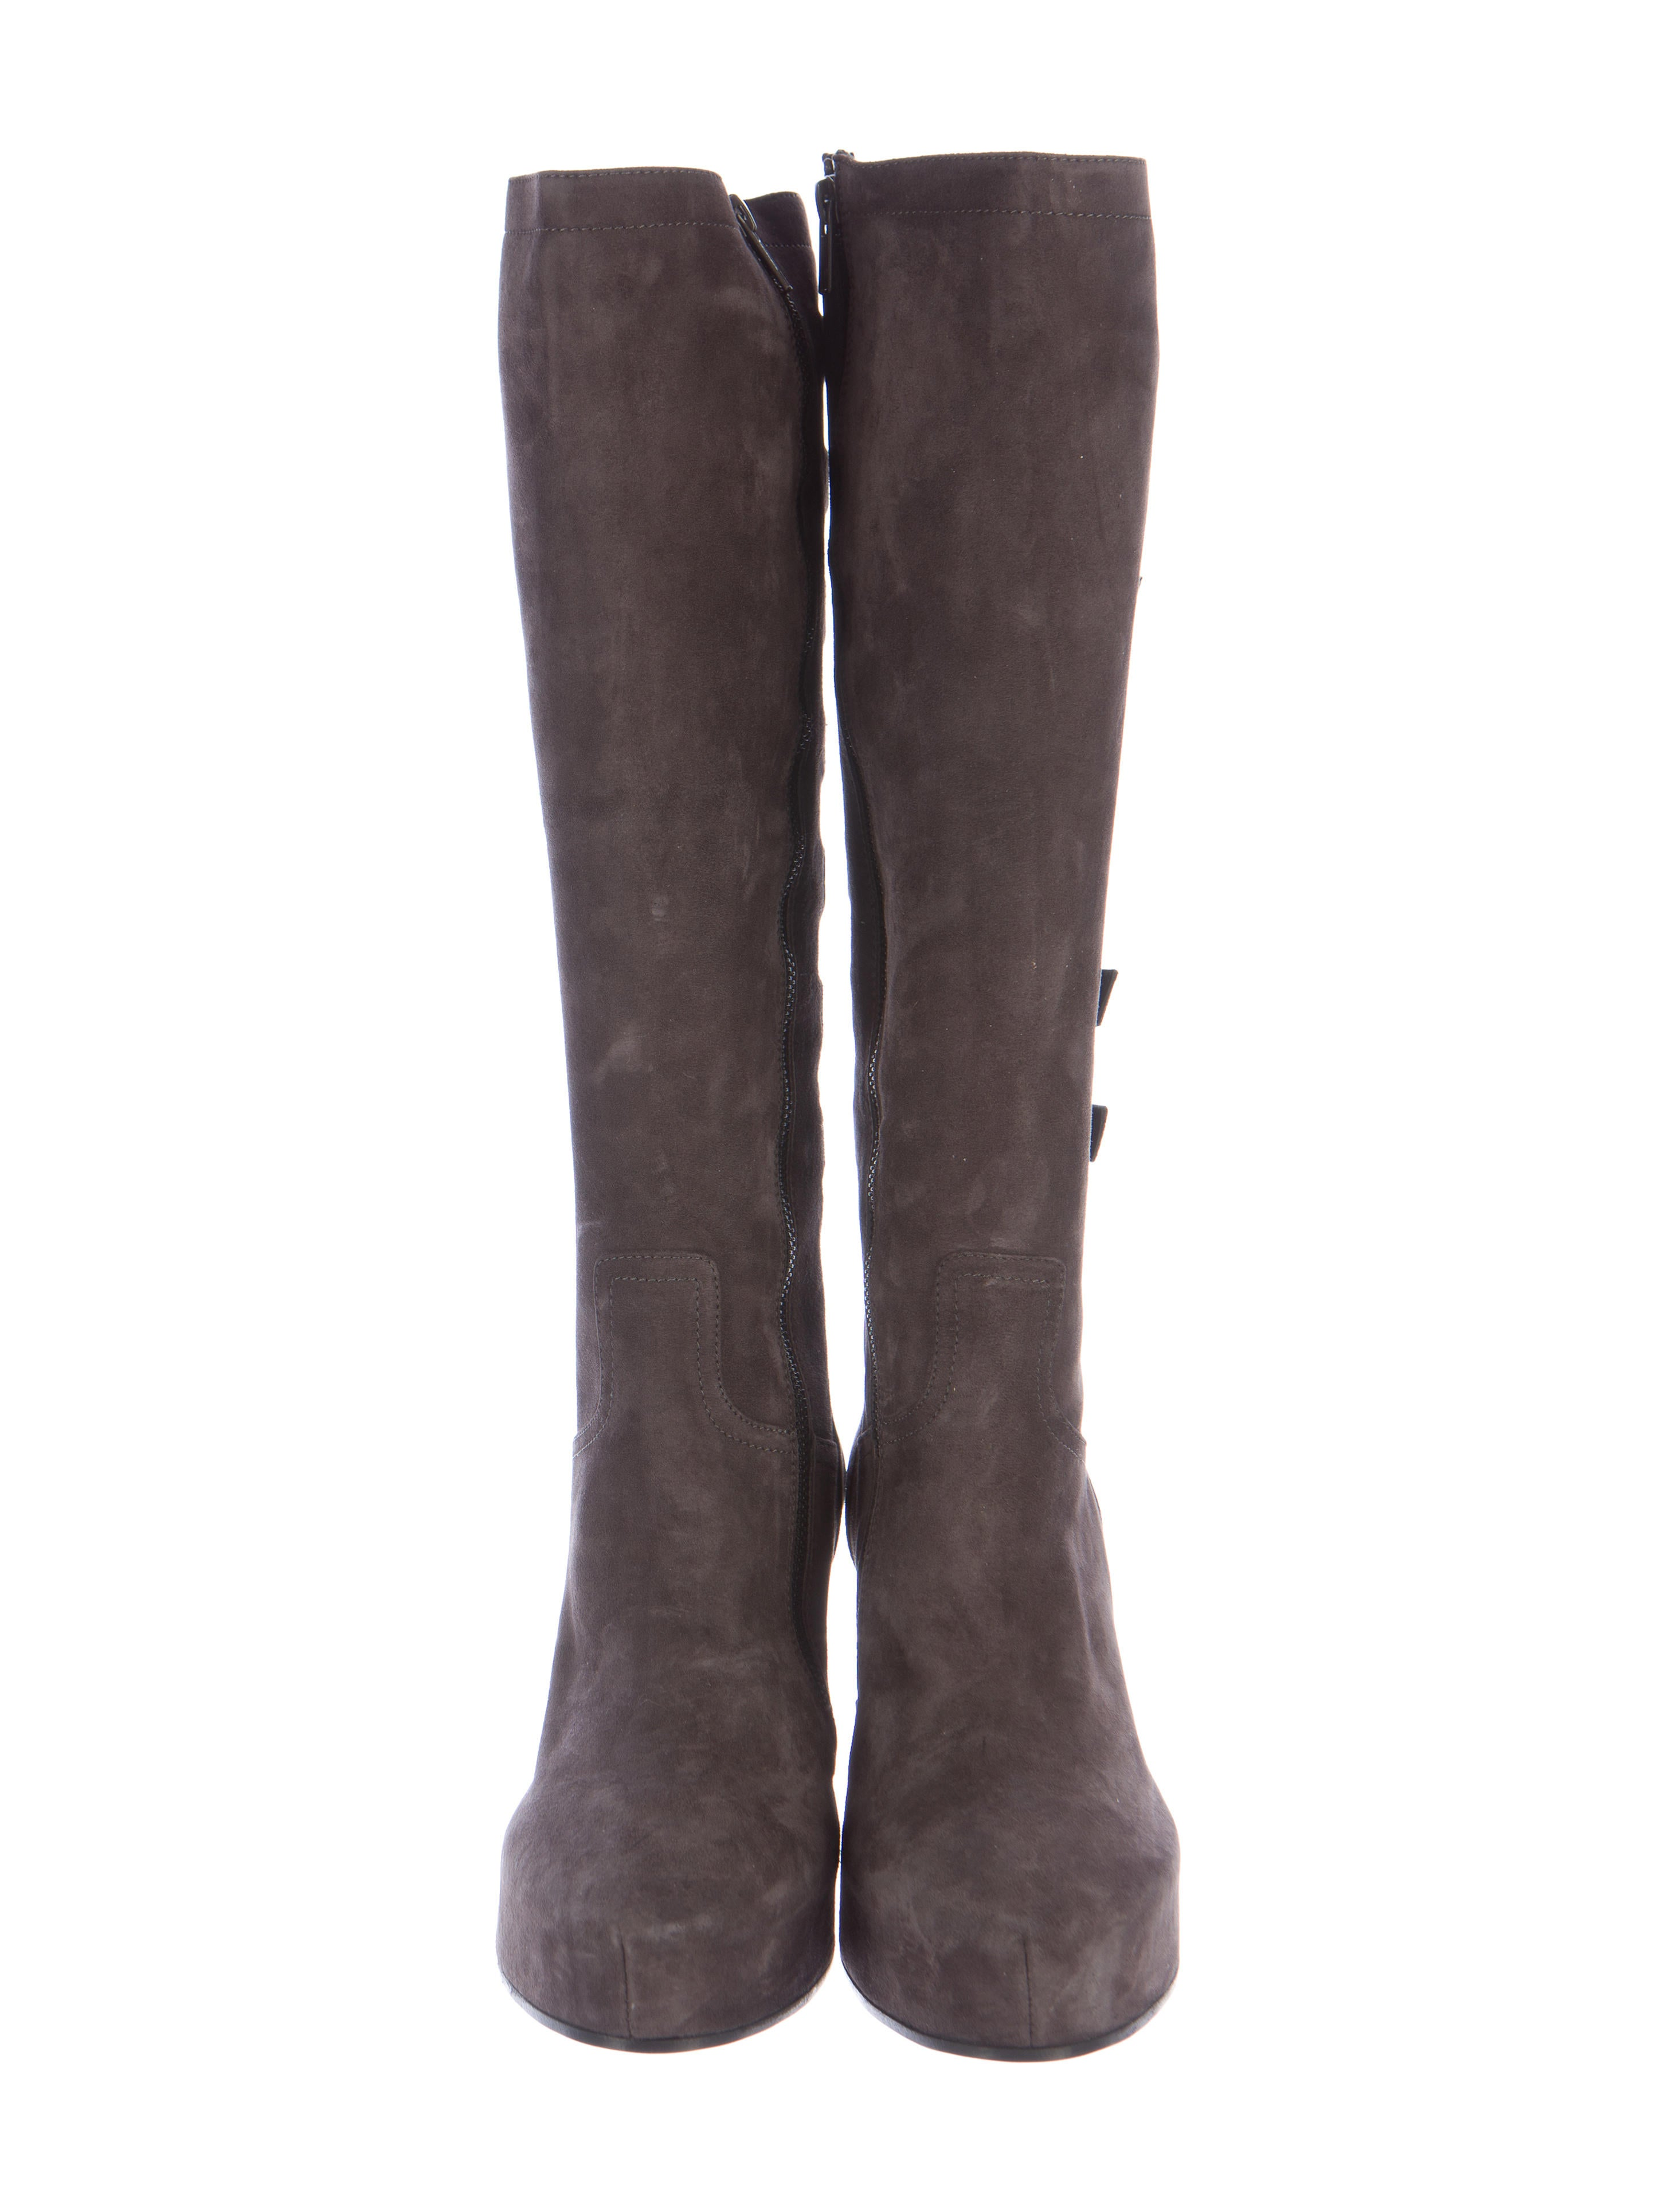 demeulemeester buckle accented wedge boots shoes